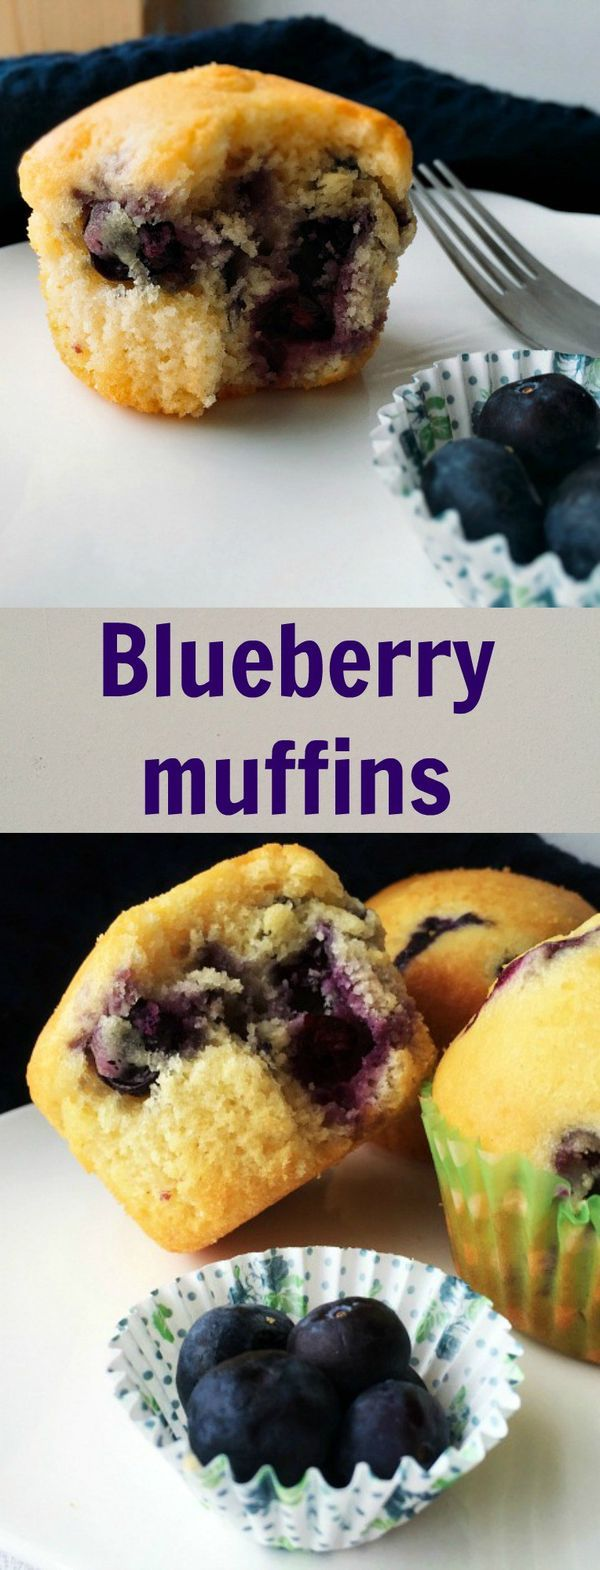 Best blueberry muffins, a healthy recipe for breakfast or snack time.